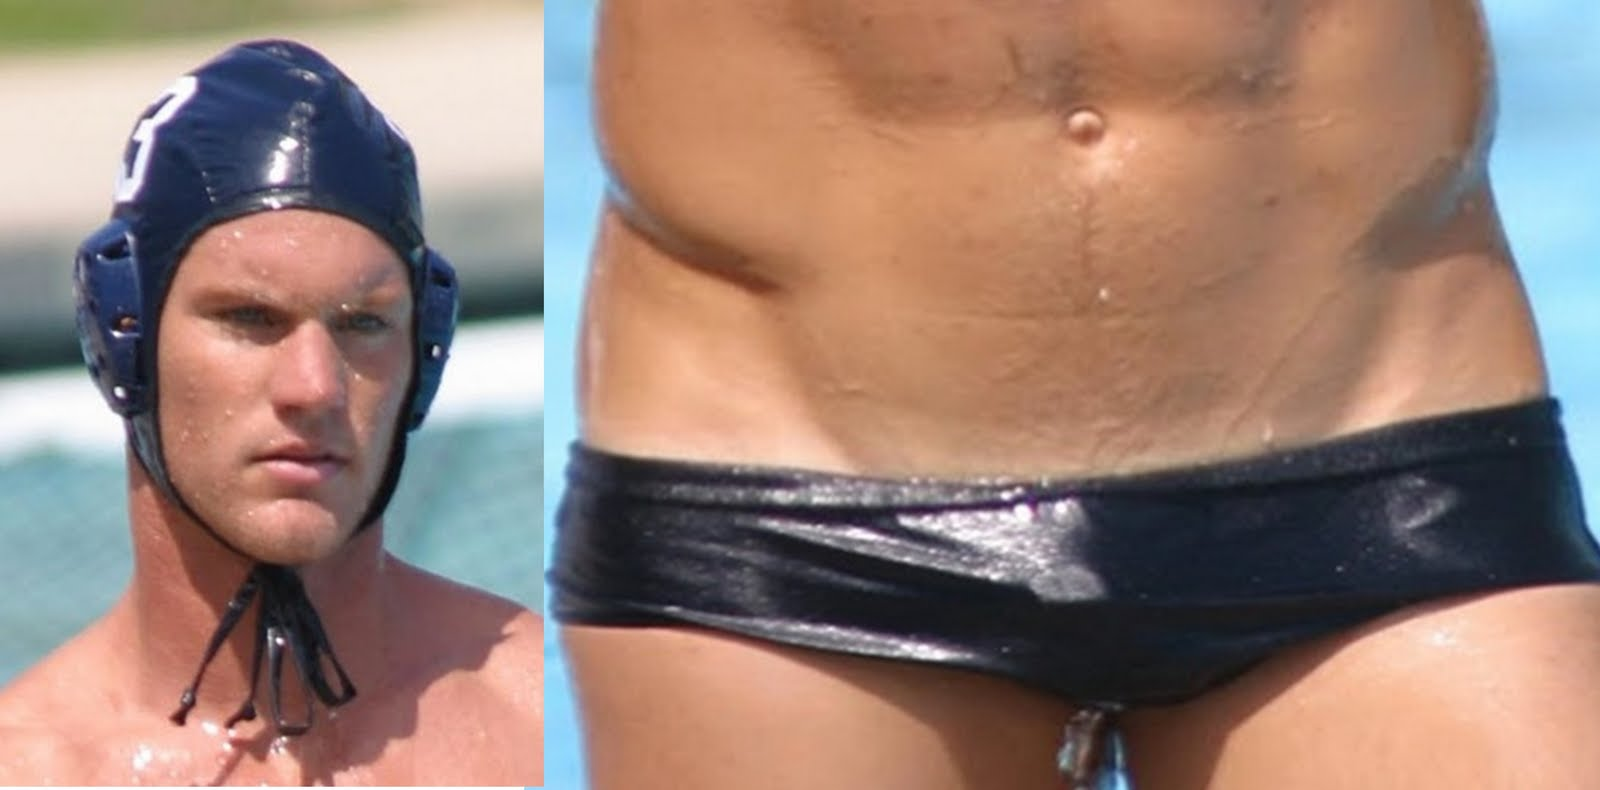 Hunt Down and Expose Small Cocks: Micro speedo